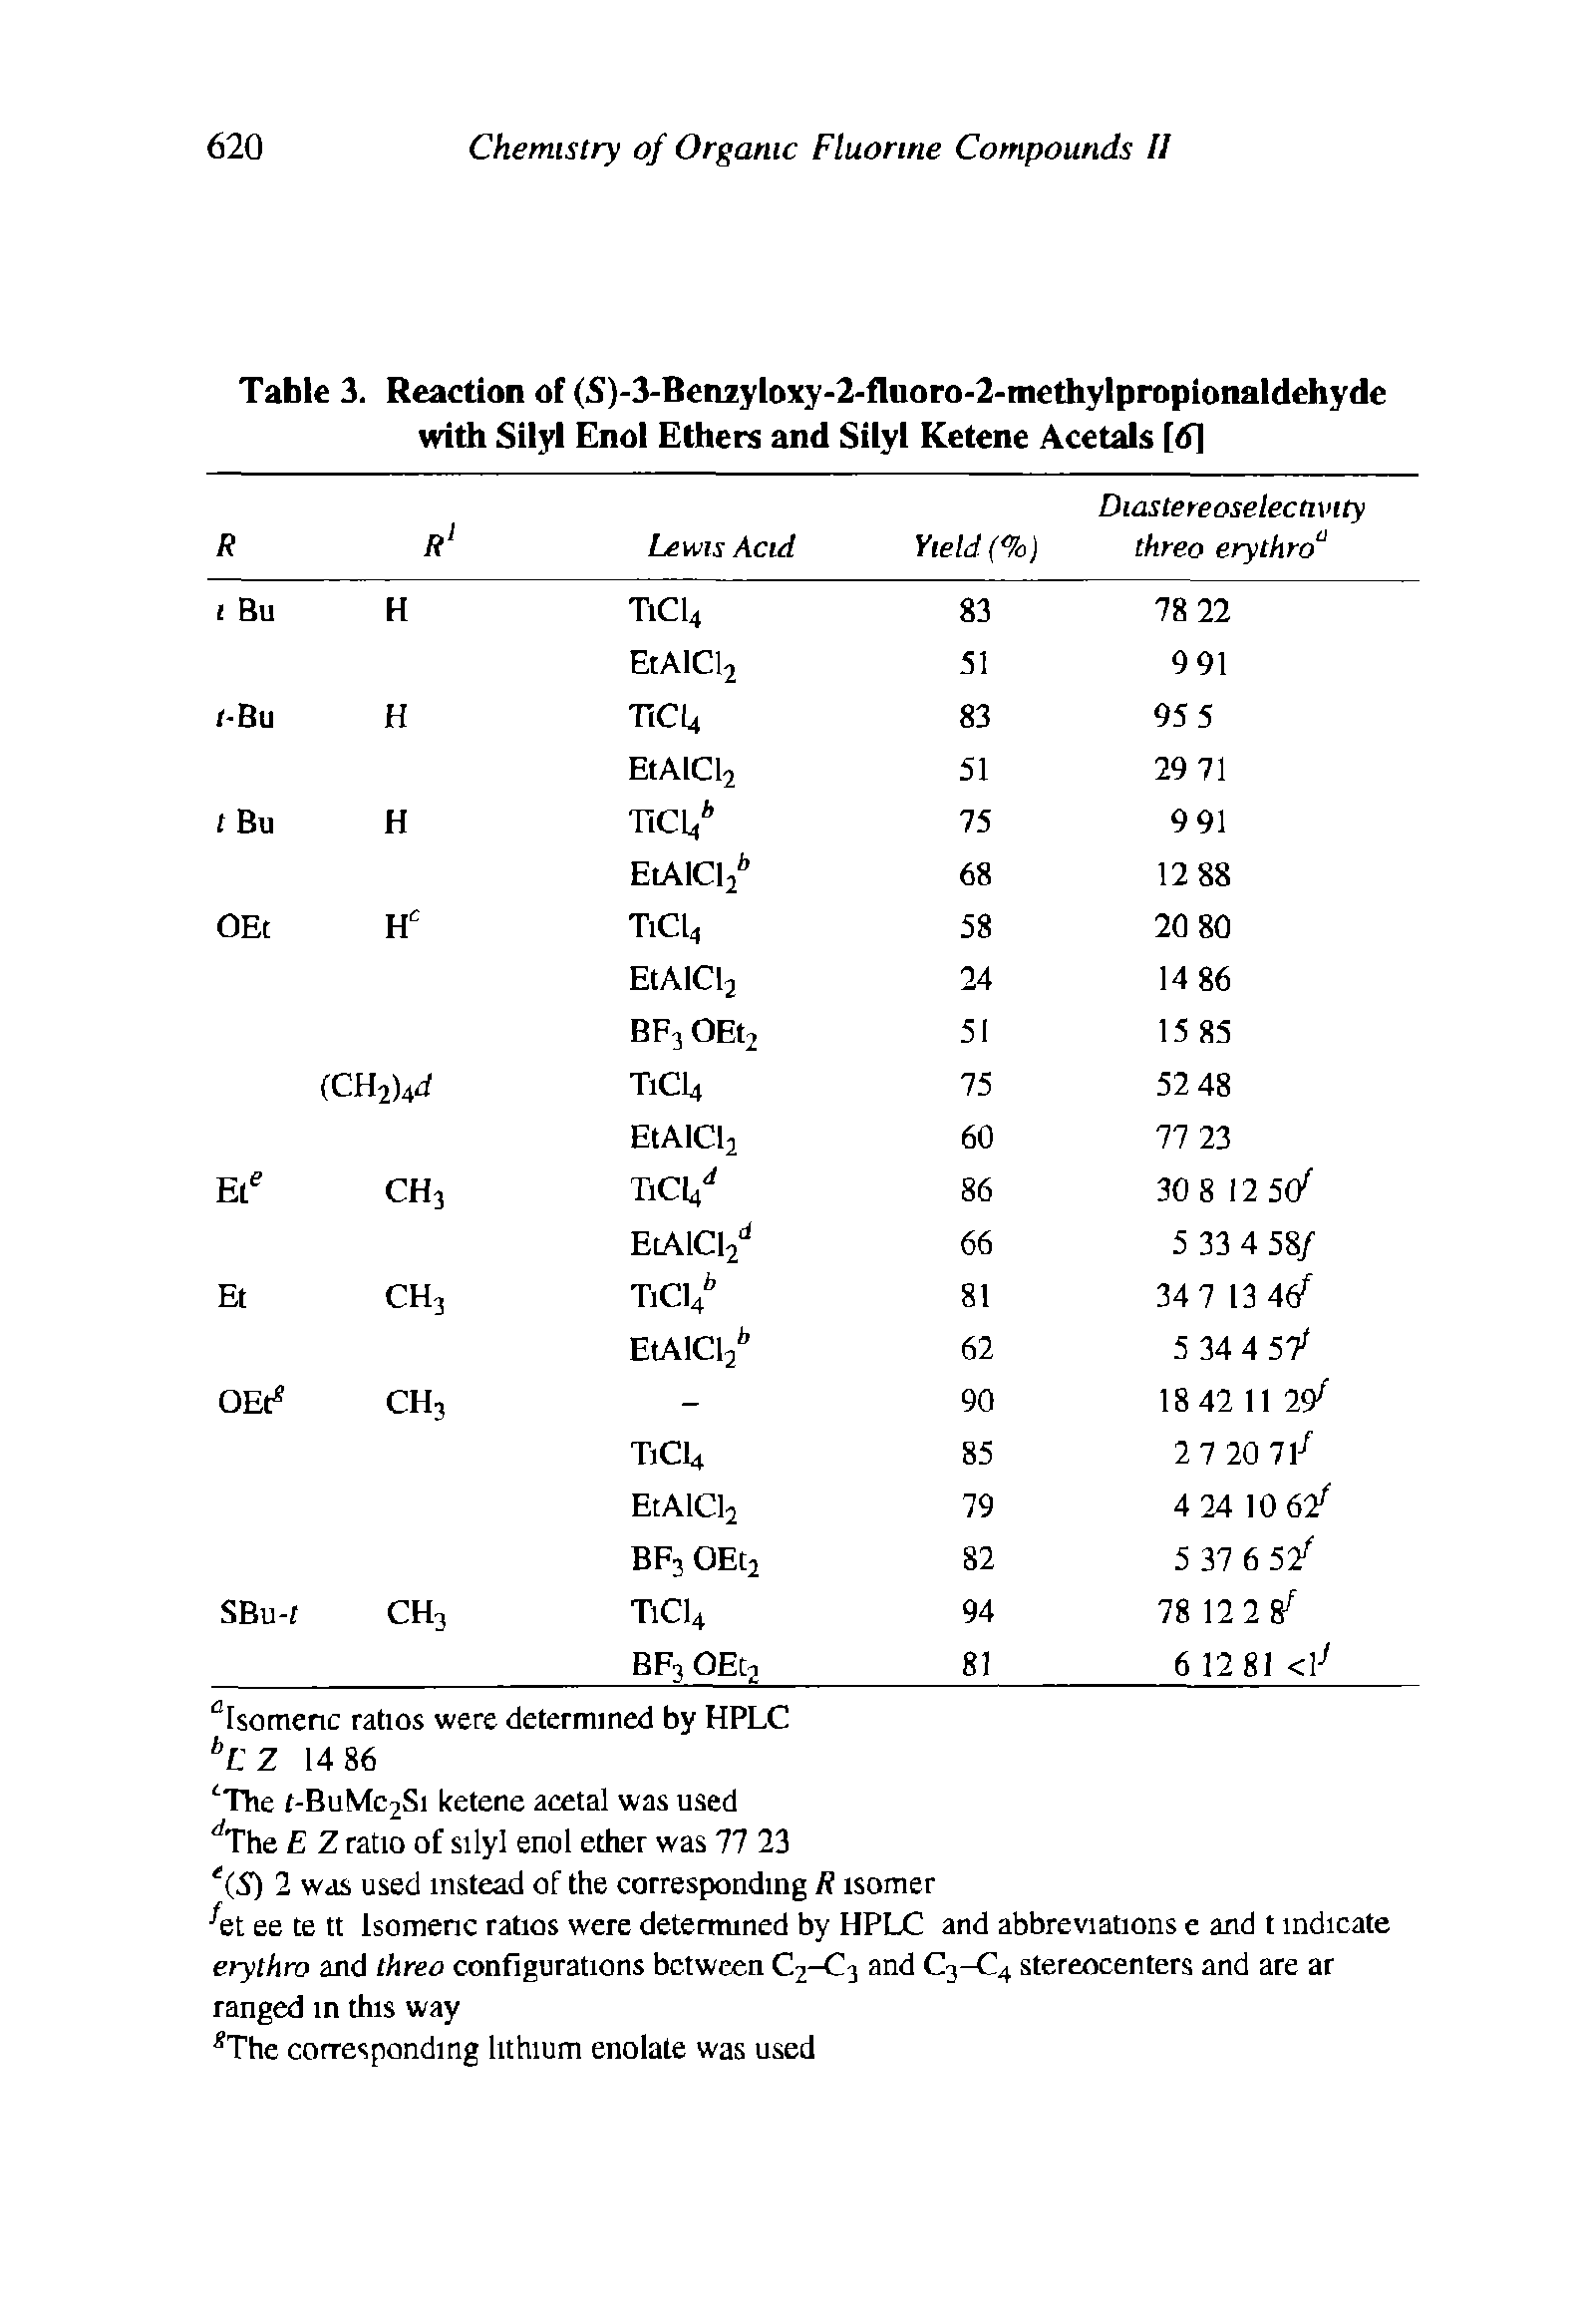 "Table 3. Reaction of (5)-3-Ben2yloxy-2-fIuoro-2-methylpropionaldehyde with <a href=""/info/silyl_enol_ethers"">Silyl Enol Ethers</a> and Silyl Ketene Acetals [6]"